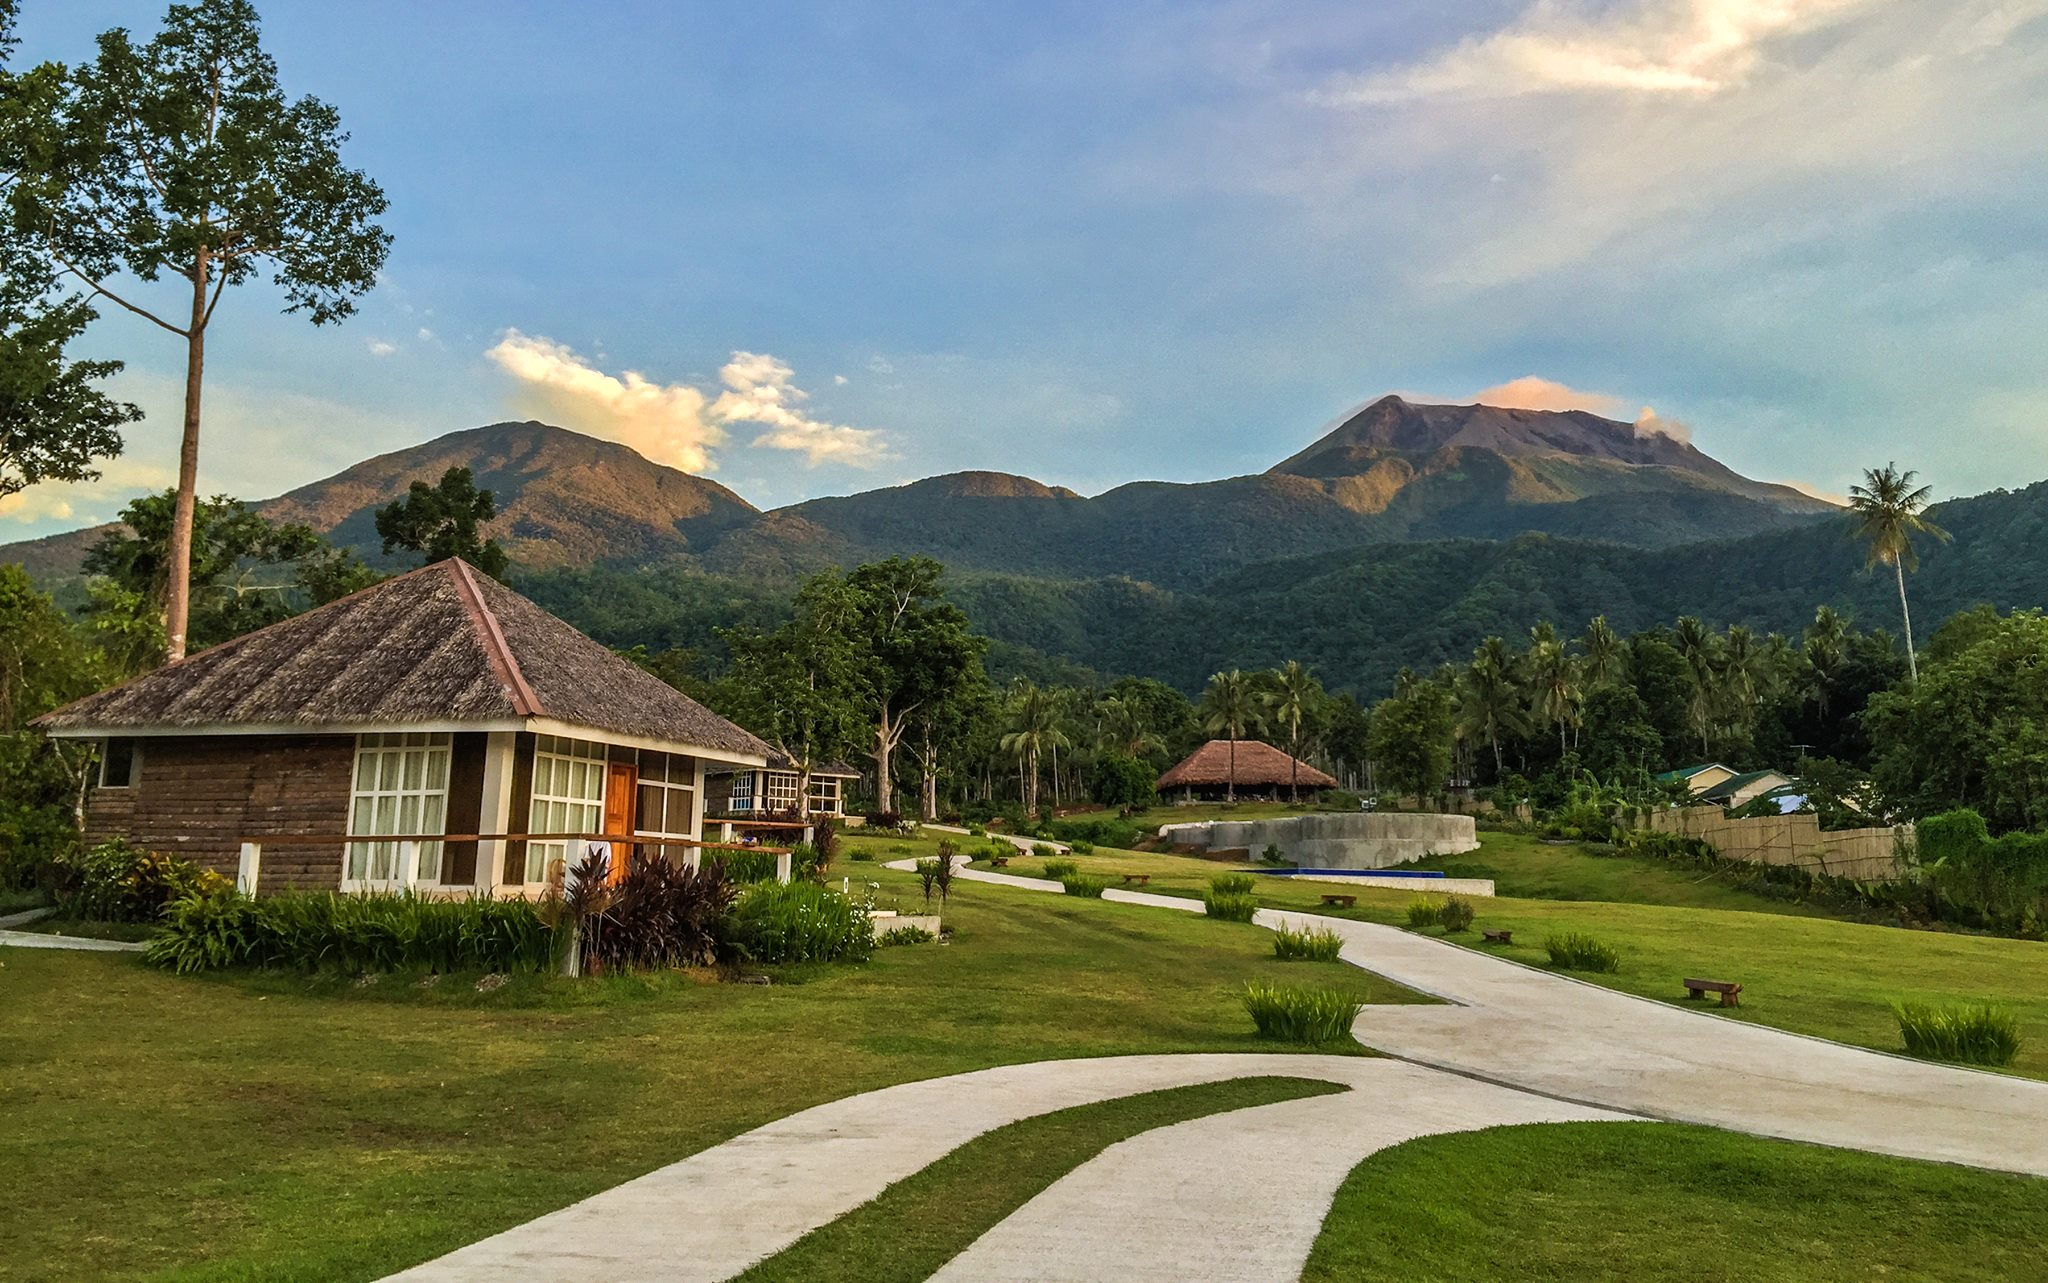 13 Best Sorsogon Bicol Hotels and Resorts: Beachfront, Donsol Whale Sharks, Surfing